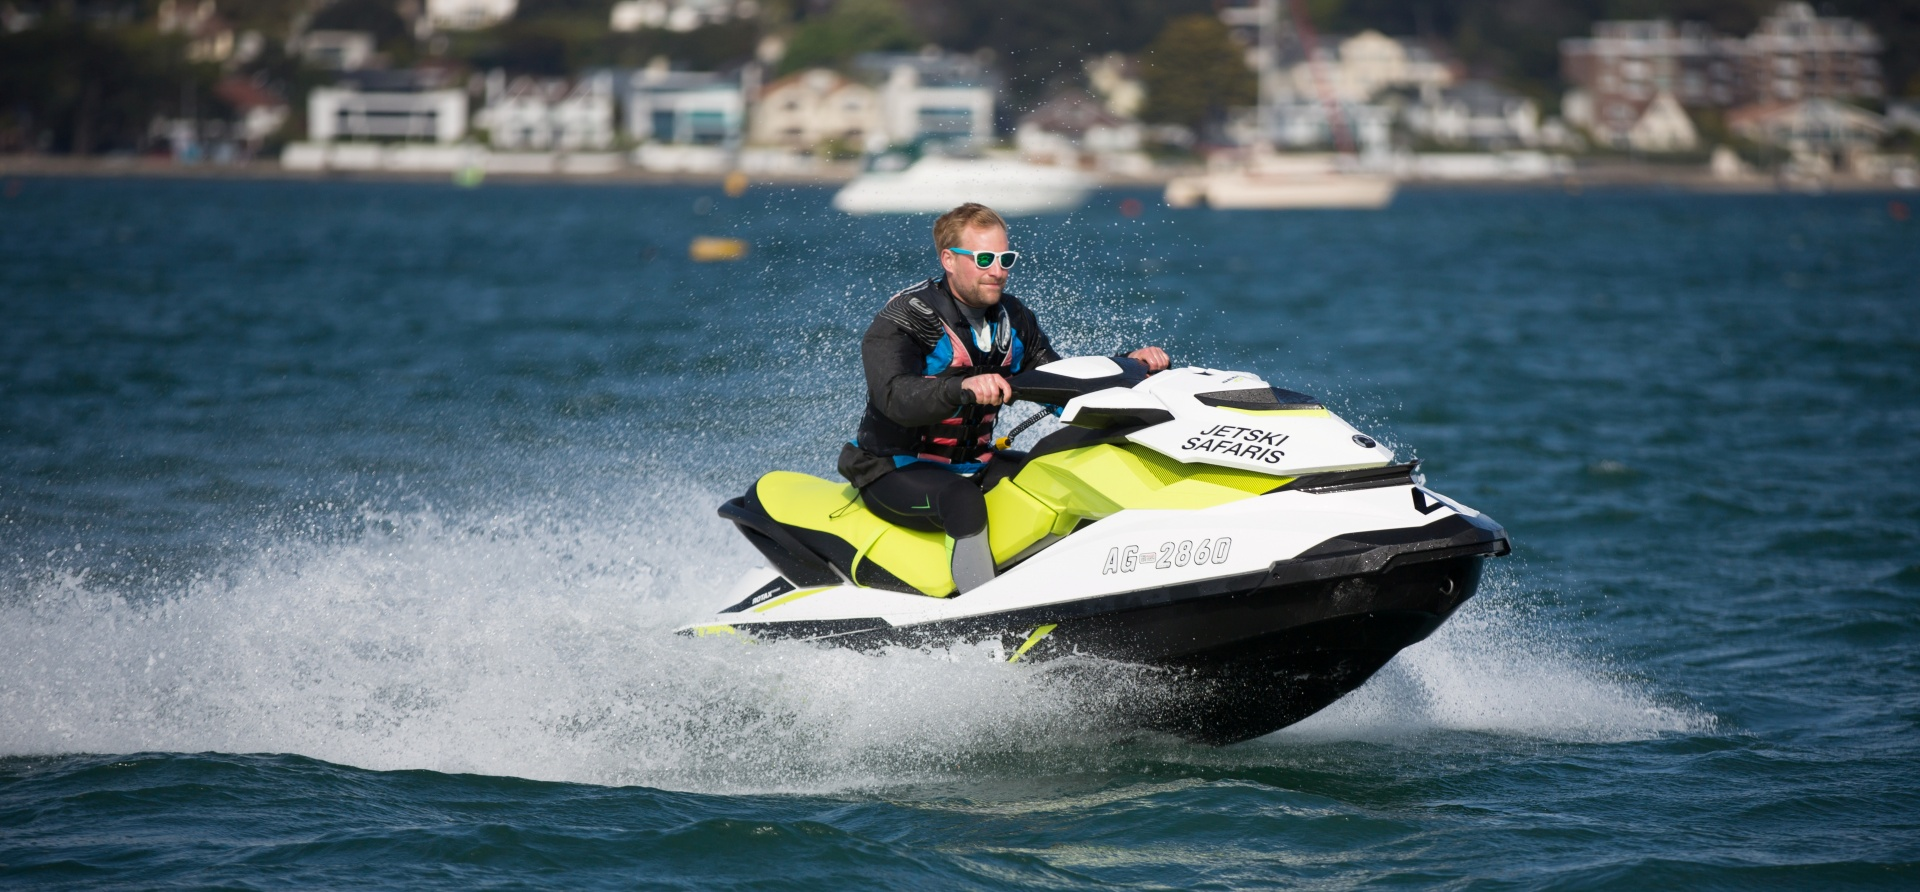 Bournemouth Open Water Jet Ski Safari Experience for Two-1